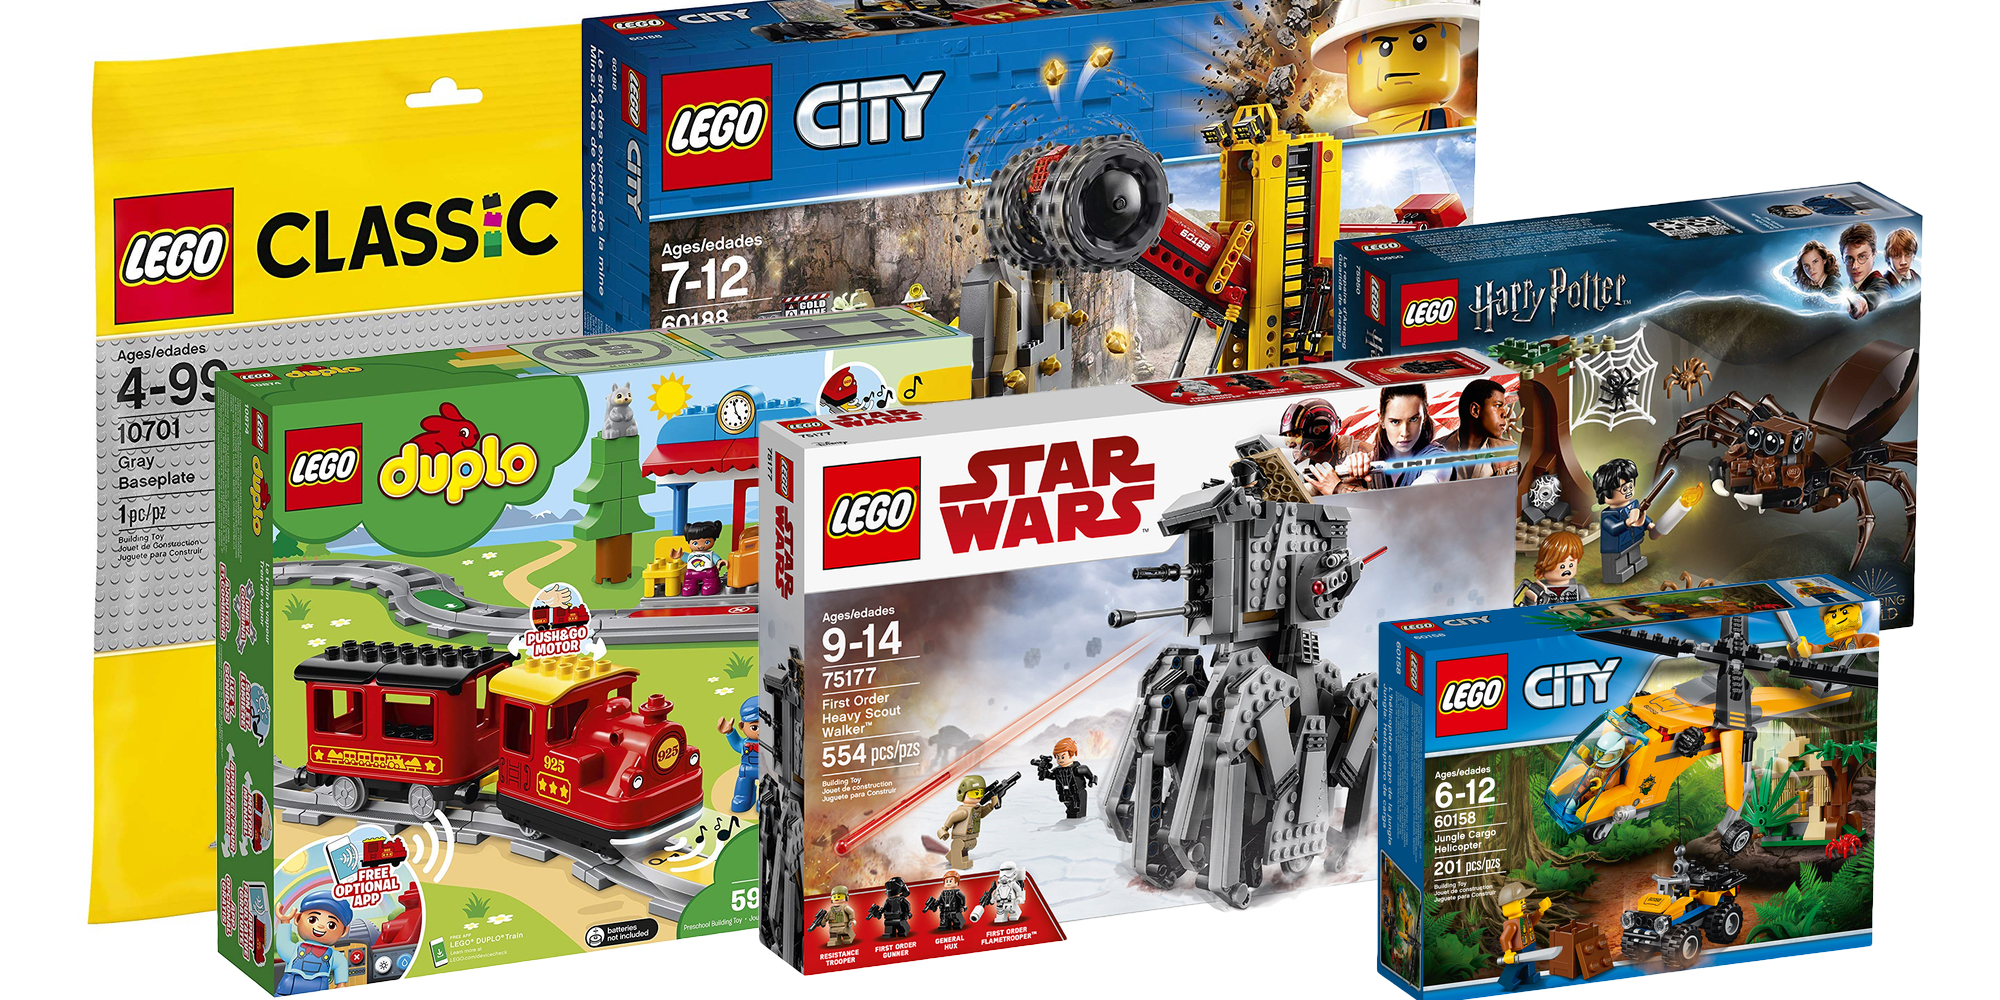 Assemble LEGO City, Harry Potter, Star Wars sets and more at up to 33% off with deals from $10